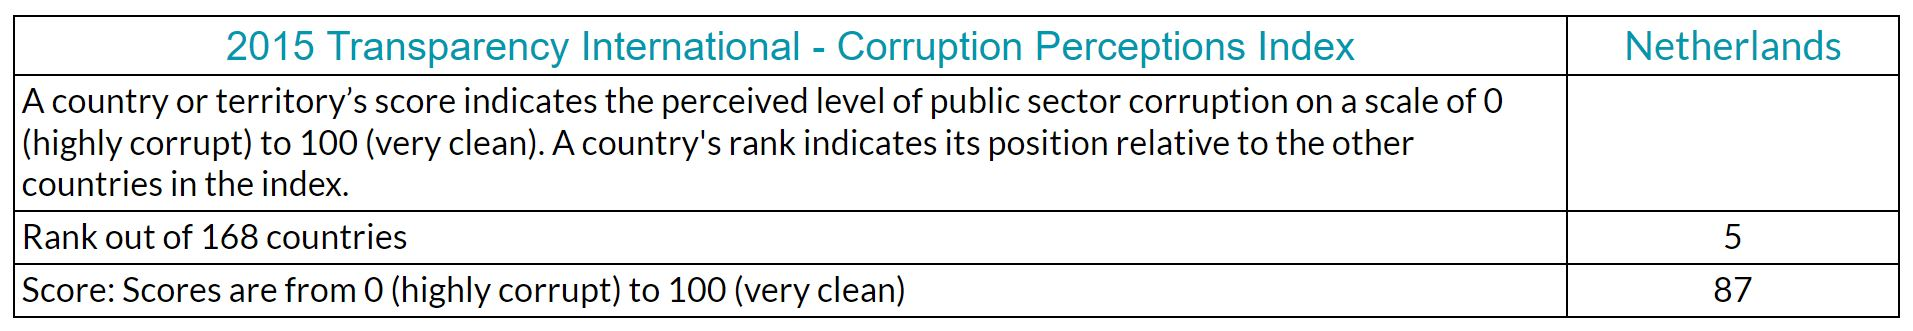 Transparency International Corruption Perceptions Index - Netherlands